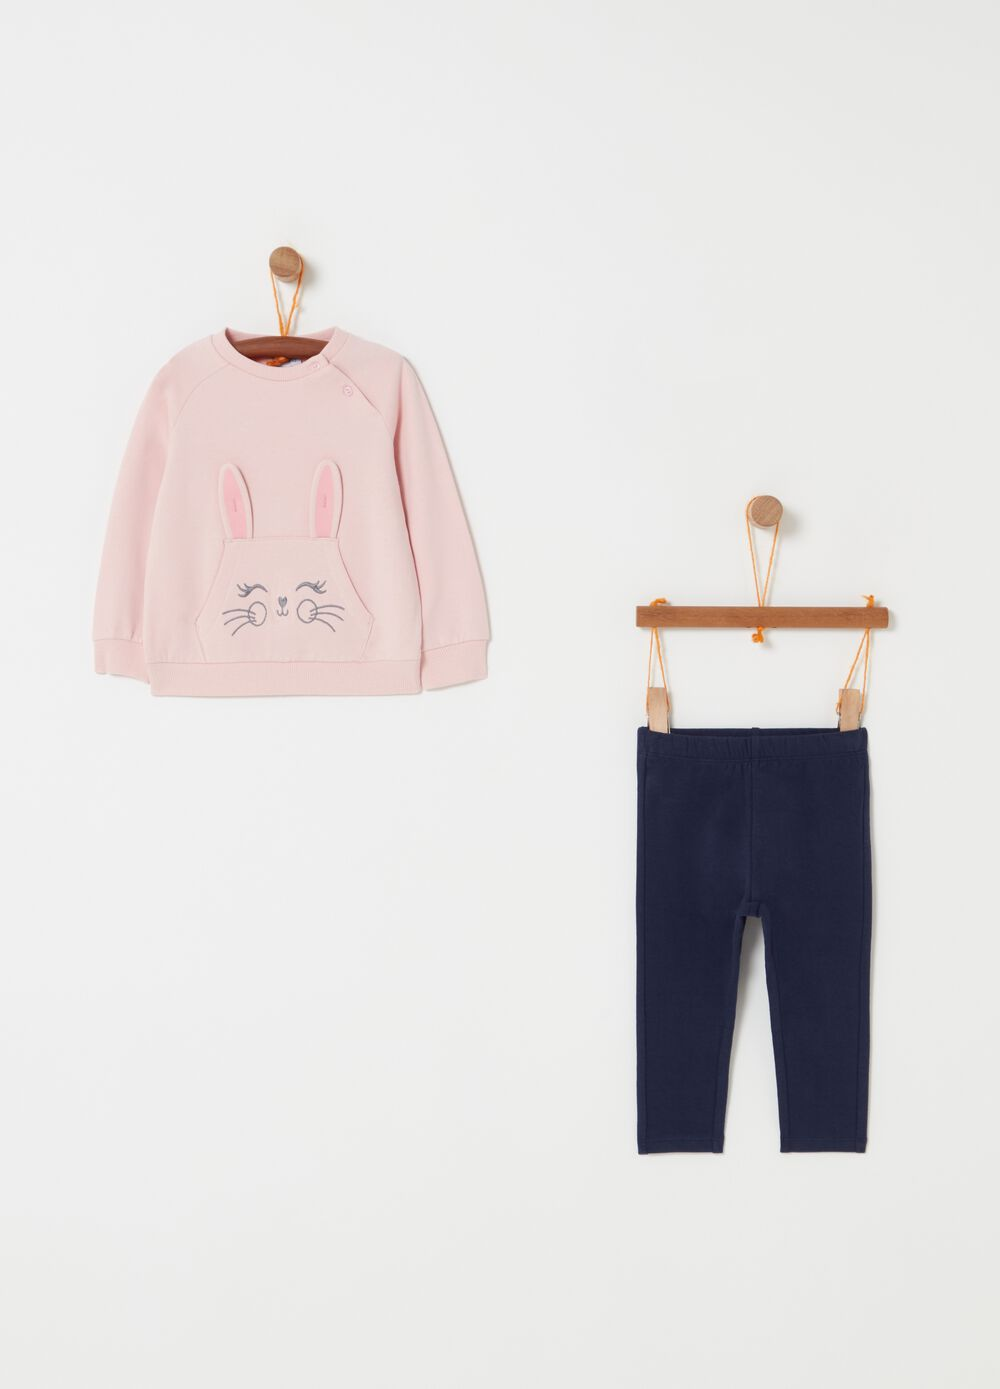 Jogging set with sweatshirt and trousers with rabbit